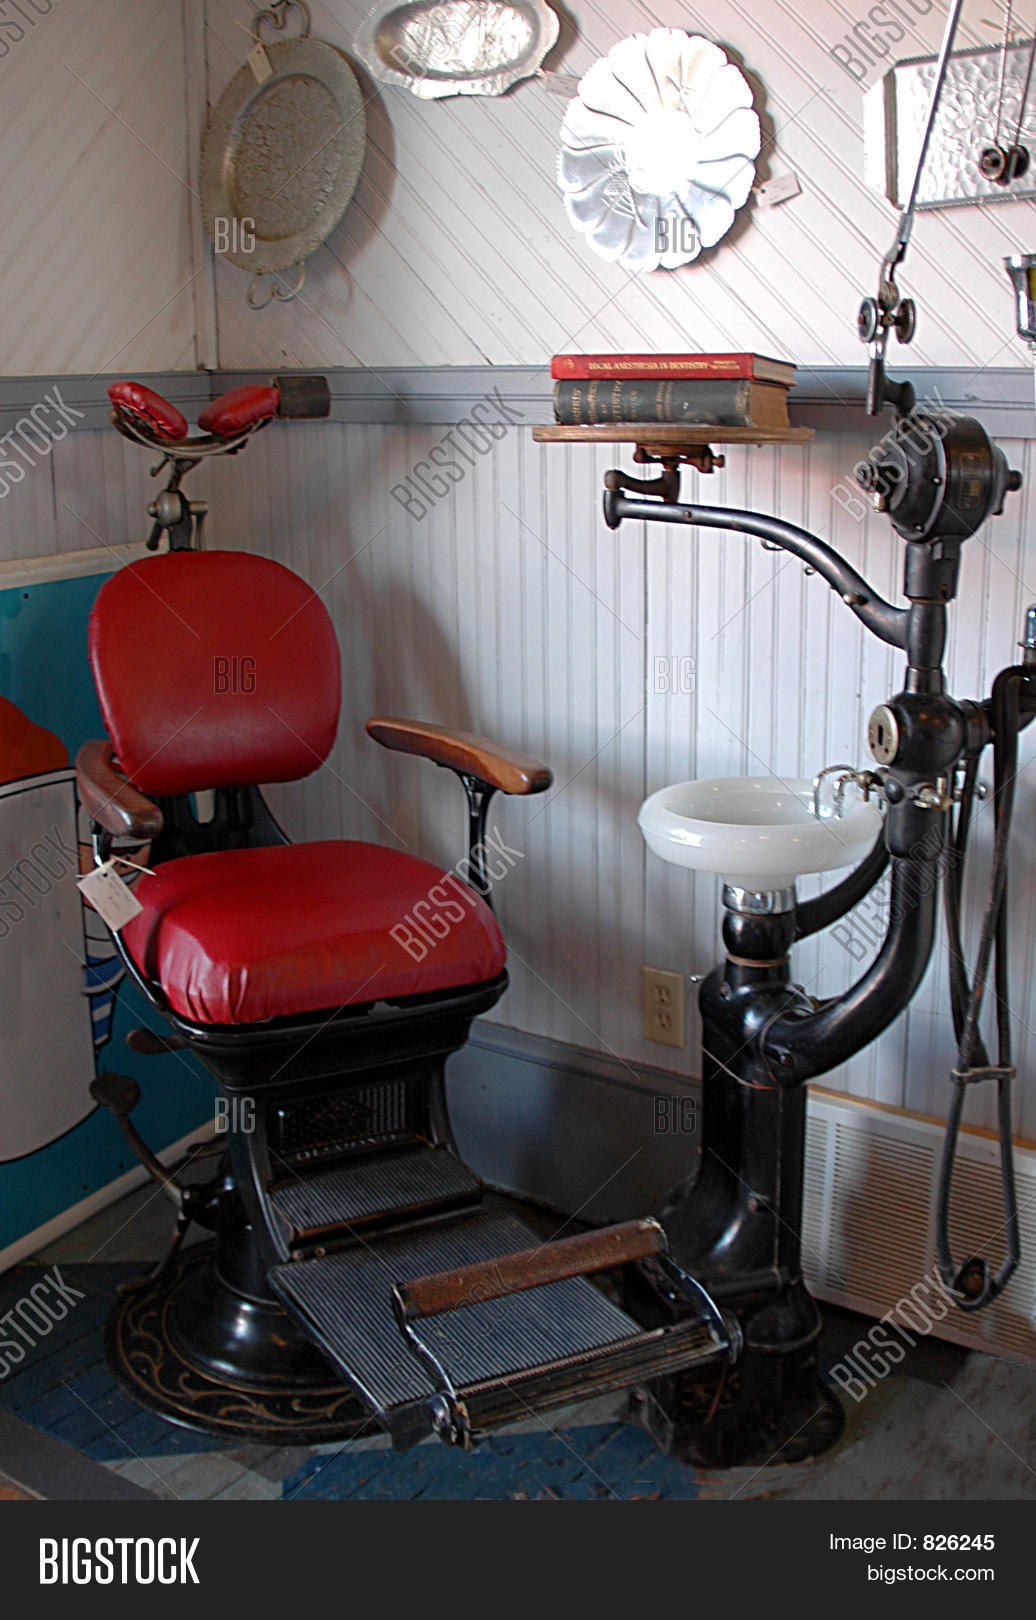 antique dentist chairs jysk patio chair covers dental image and photo bigstock